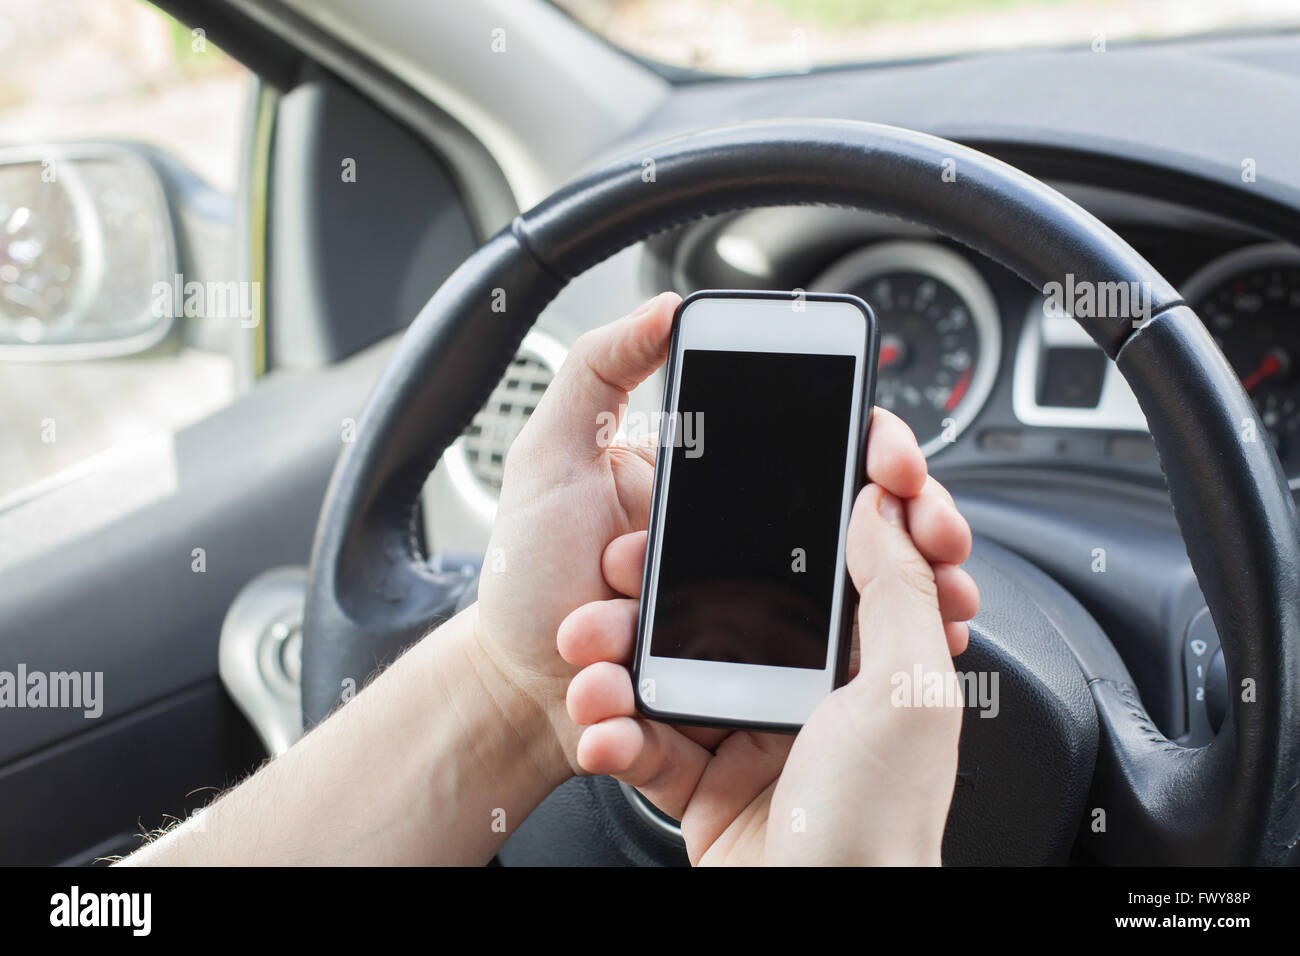 smartphone in the car, male hands holding mobile with empty screen - Stock Image